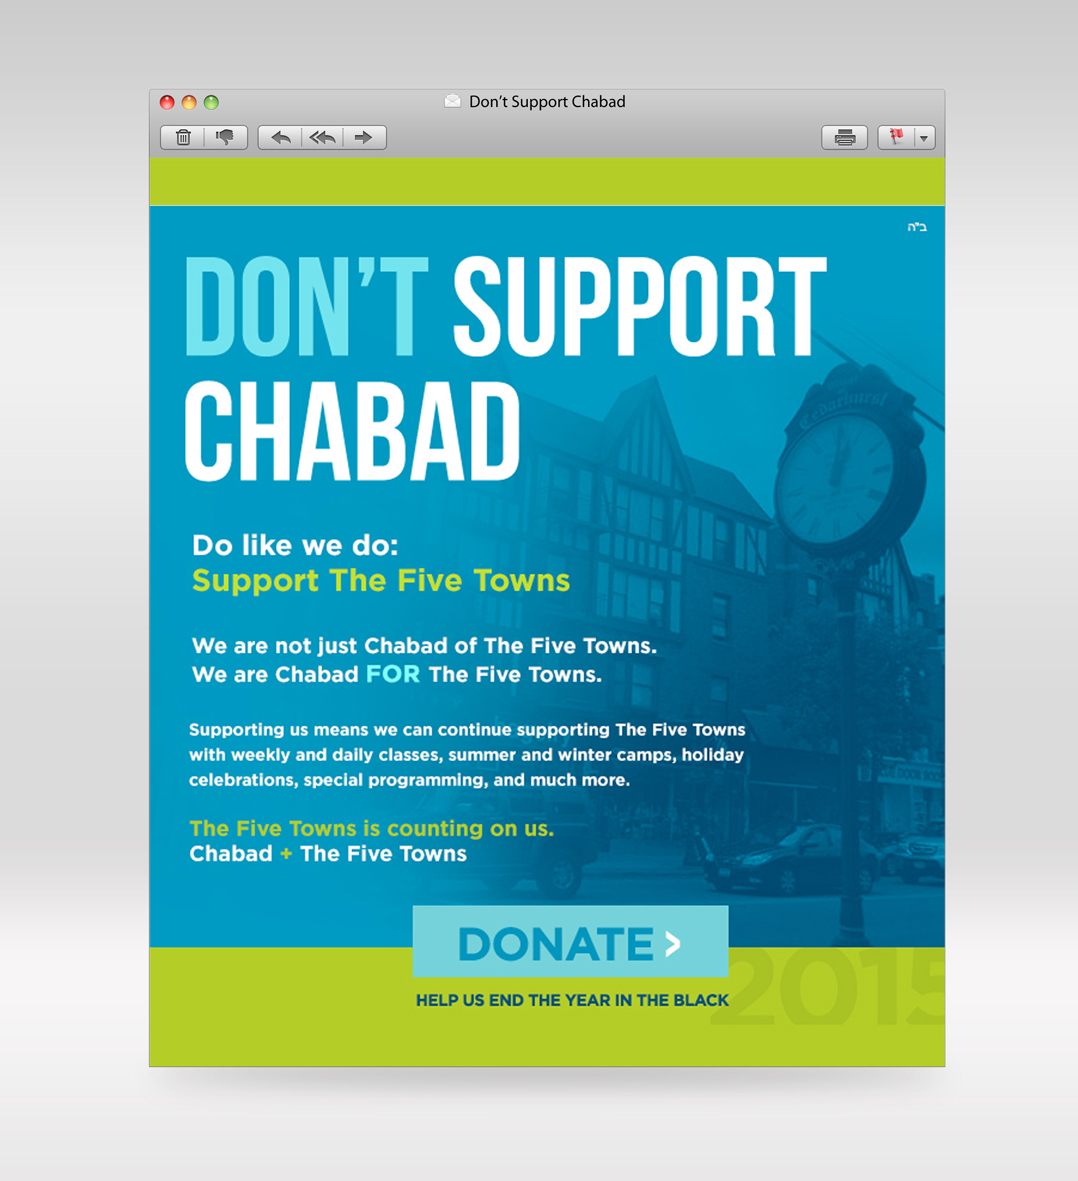 Don't Support Chabad